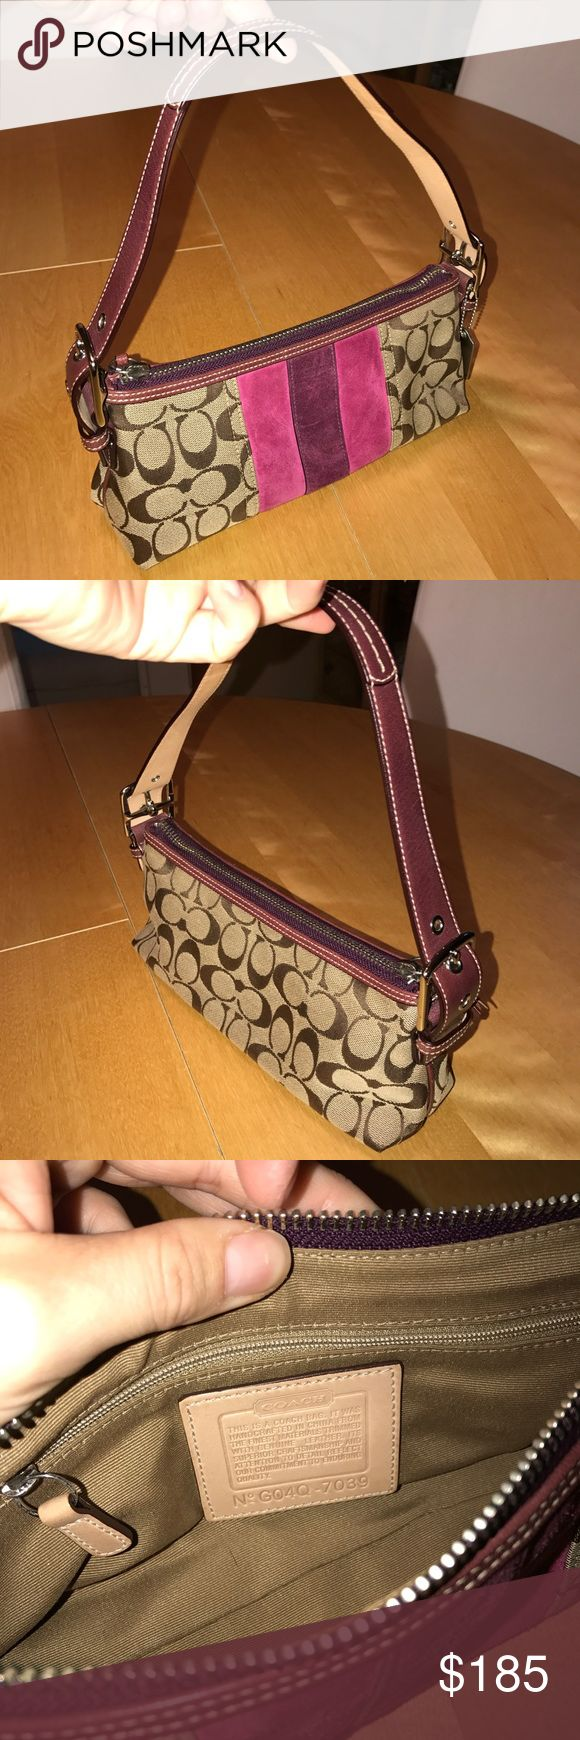 Ari-Embroidered Handbag from Kashmir with Wood Handles - Velvet with Leather - Color Elfenbein Color Exotic India tqFjPIA79j